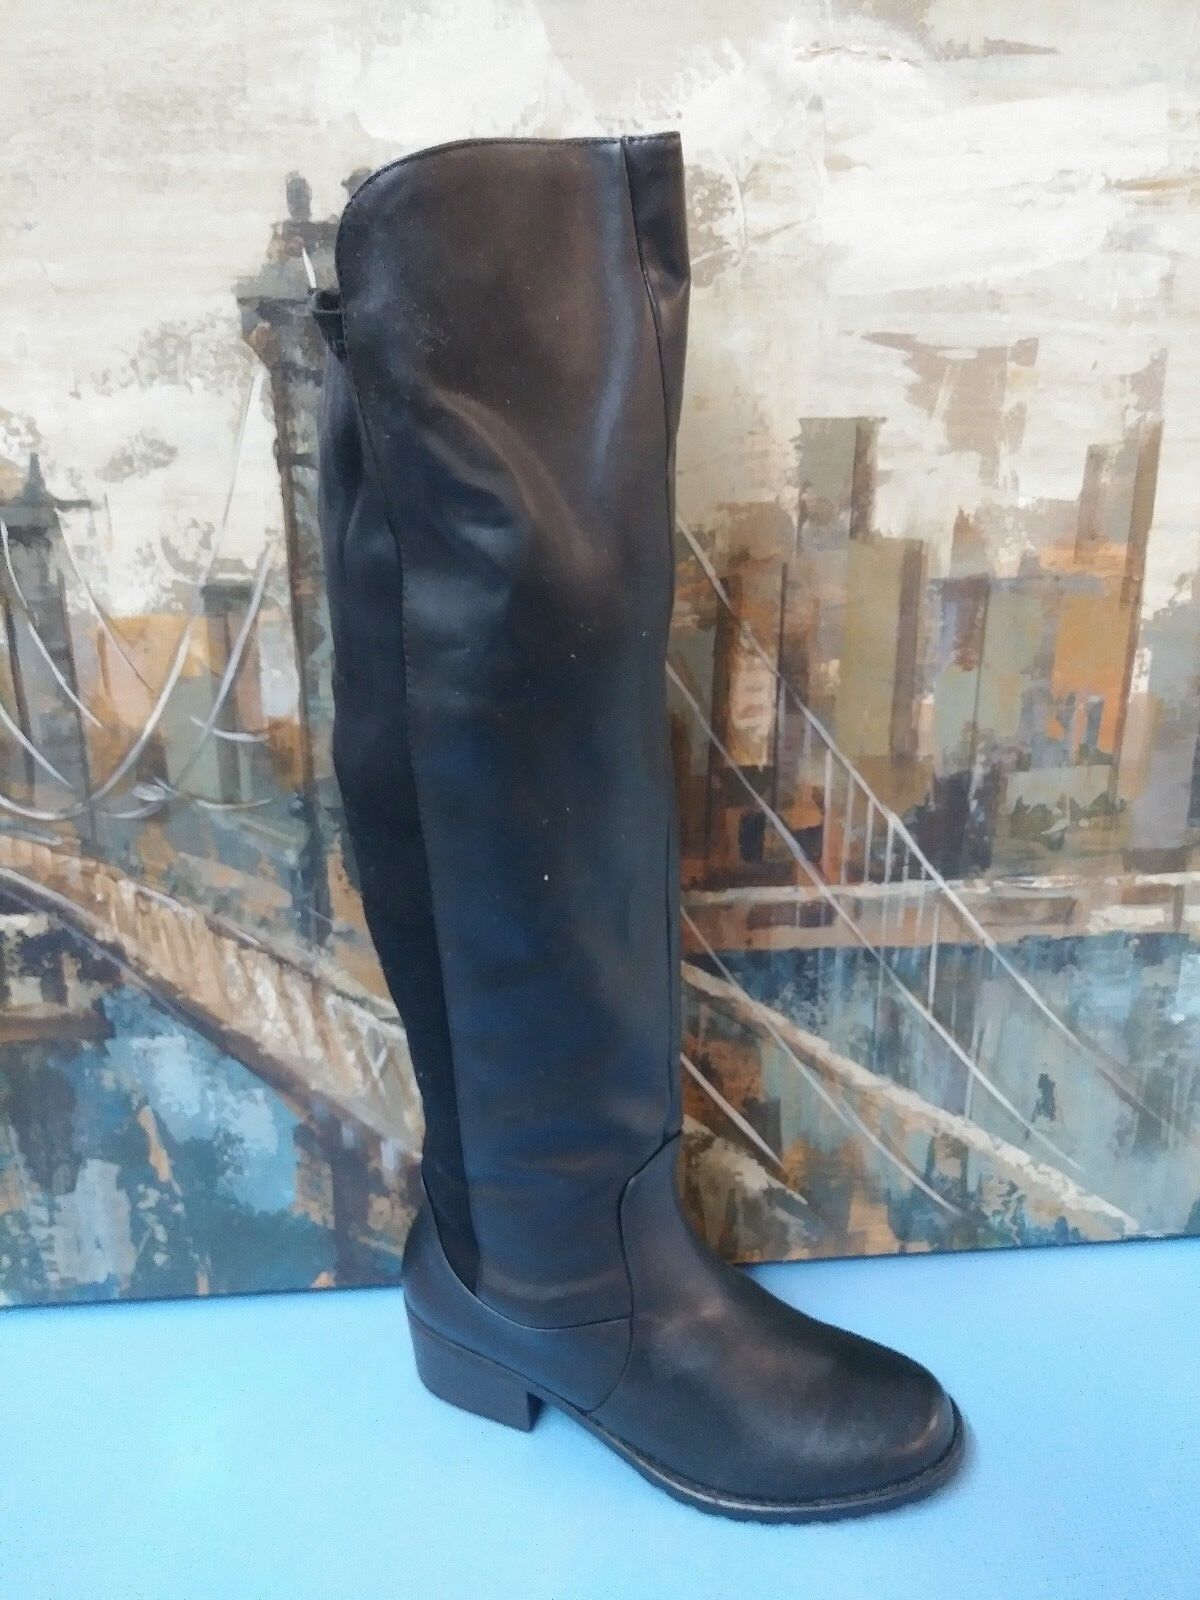 Womens  Size 7.5 Black Leather Fashion Boots Shoes Style 17730